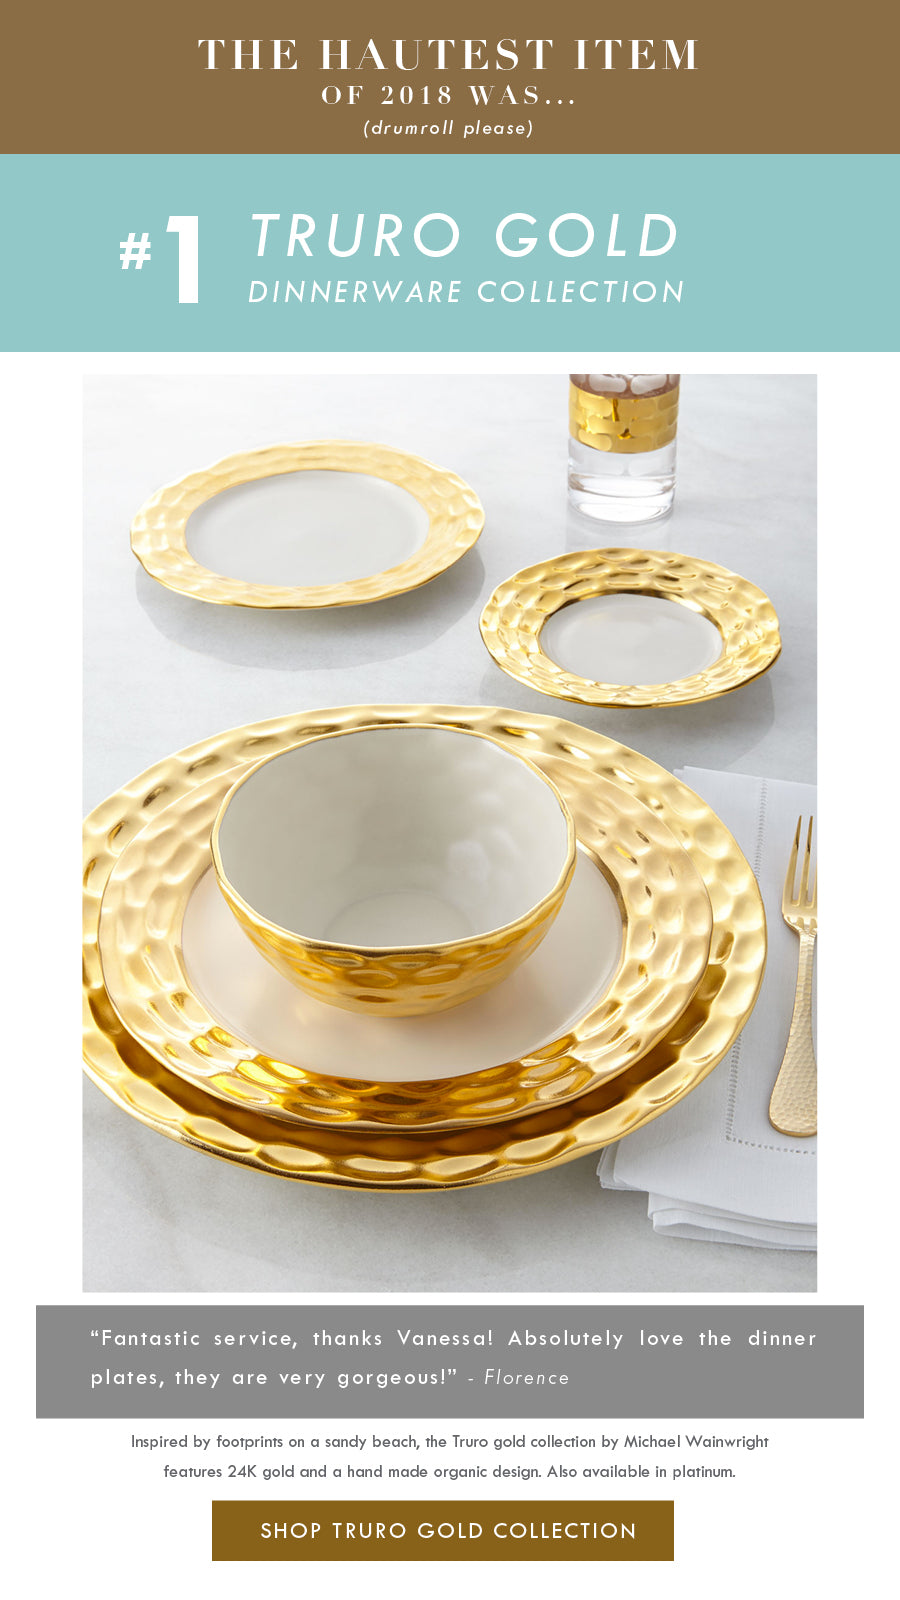 Top 18 Luxury Home Decor Trends Michael Wainwright Truro Gold Dinnerware